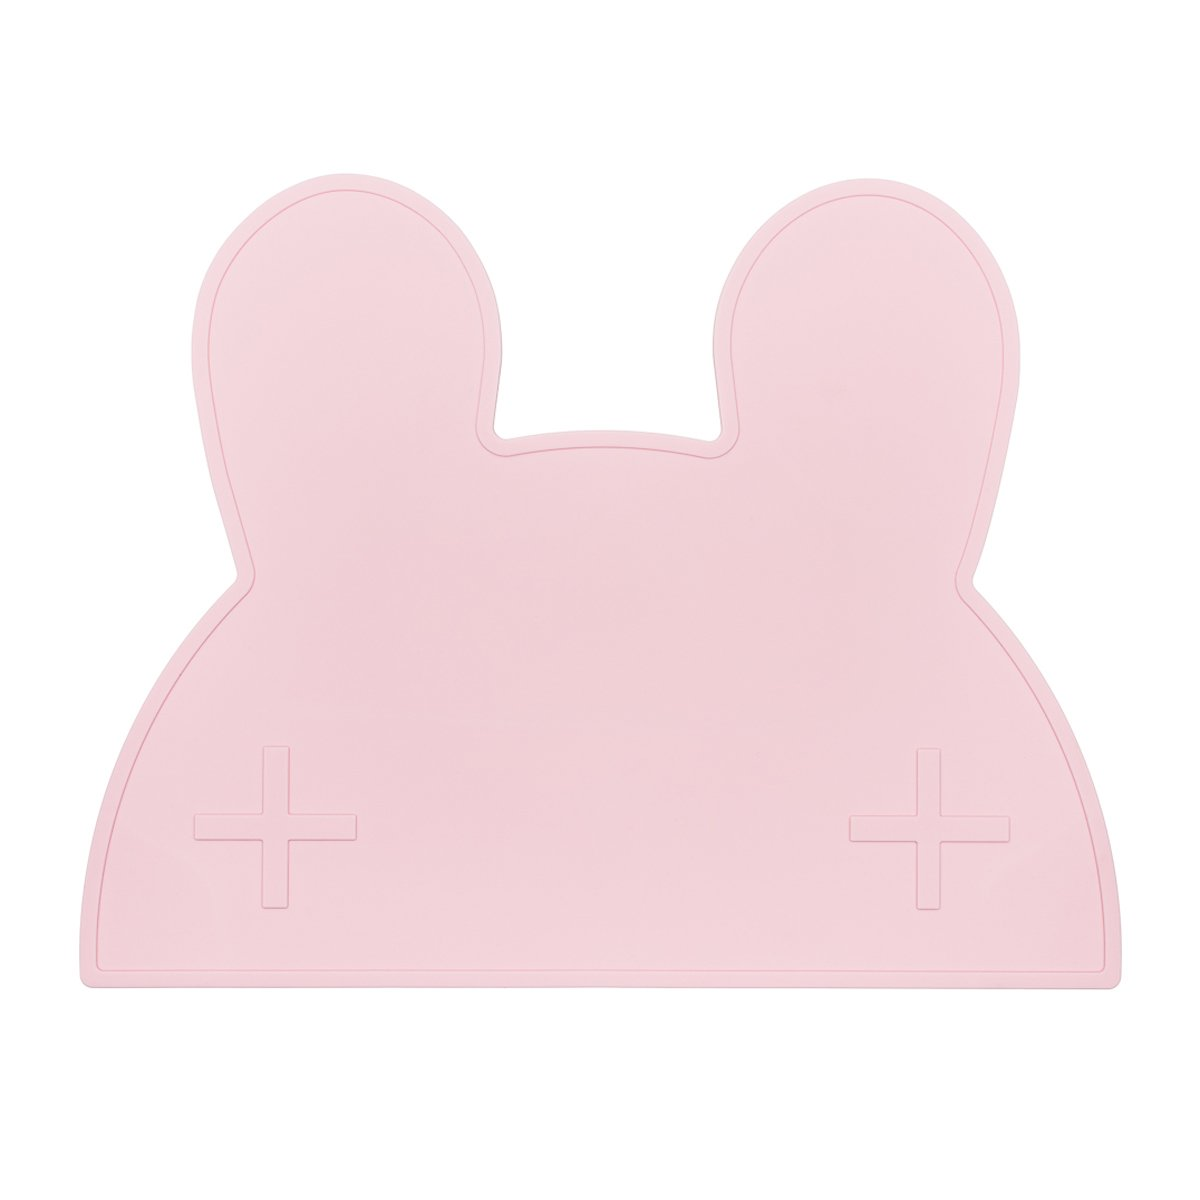 Bunny Placemat (Powder Pink)